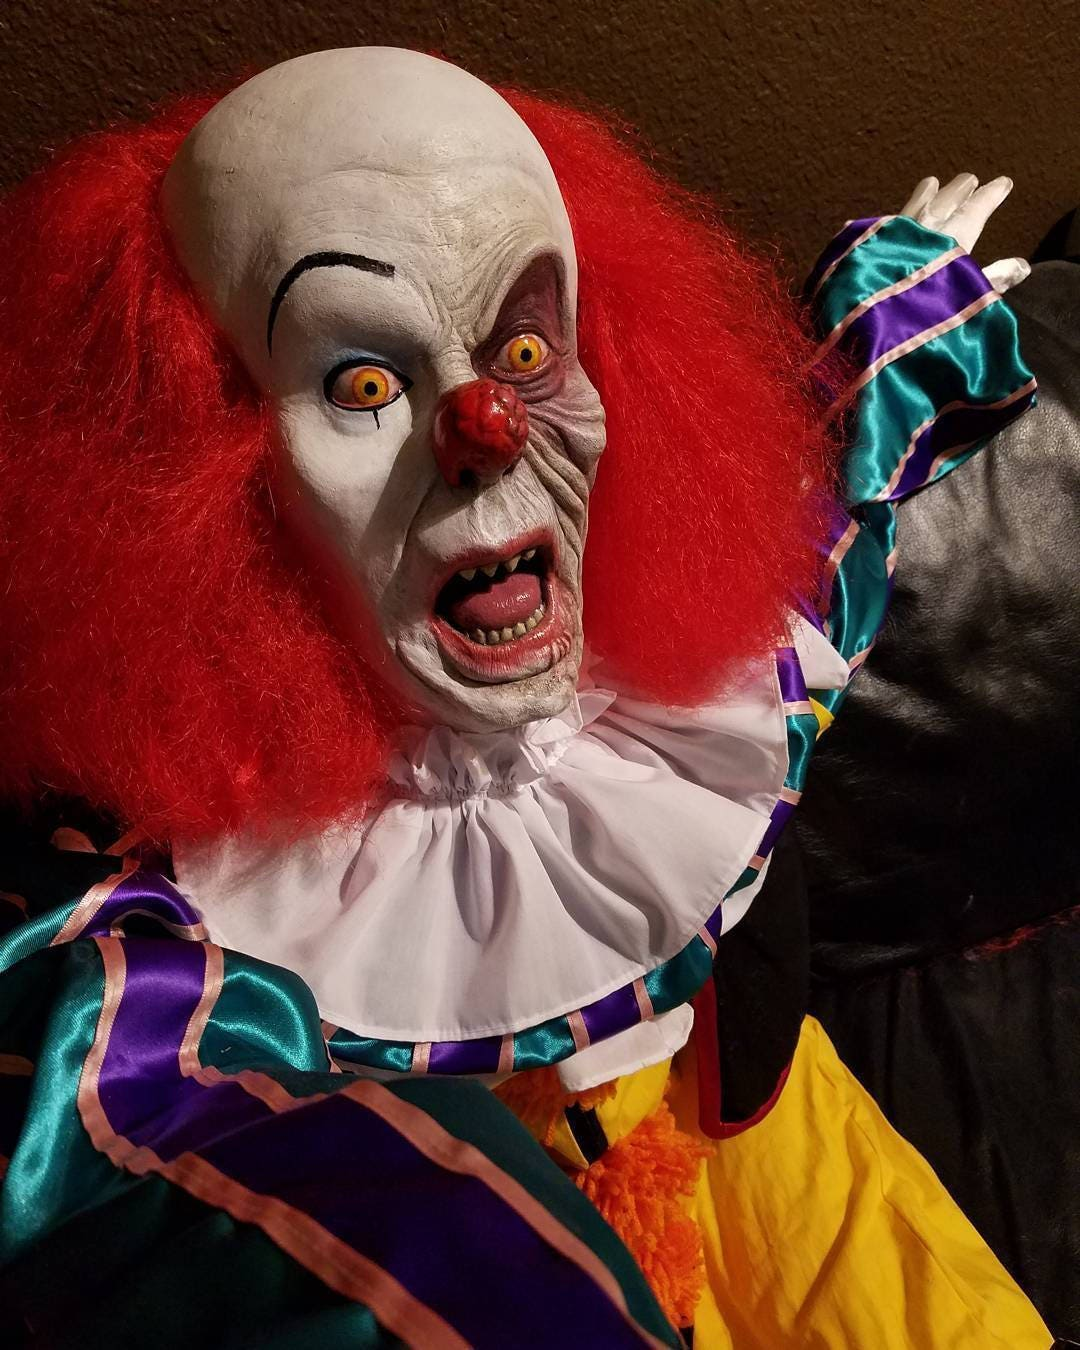 PENNYWISE The Dancing Clown IT Battery Acid   Etsy